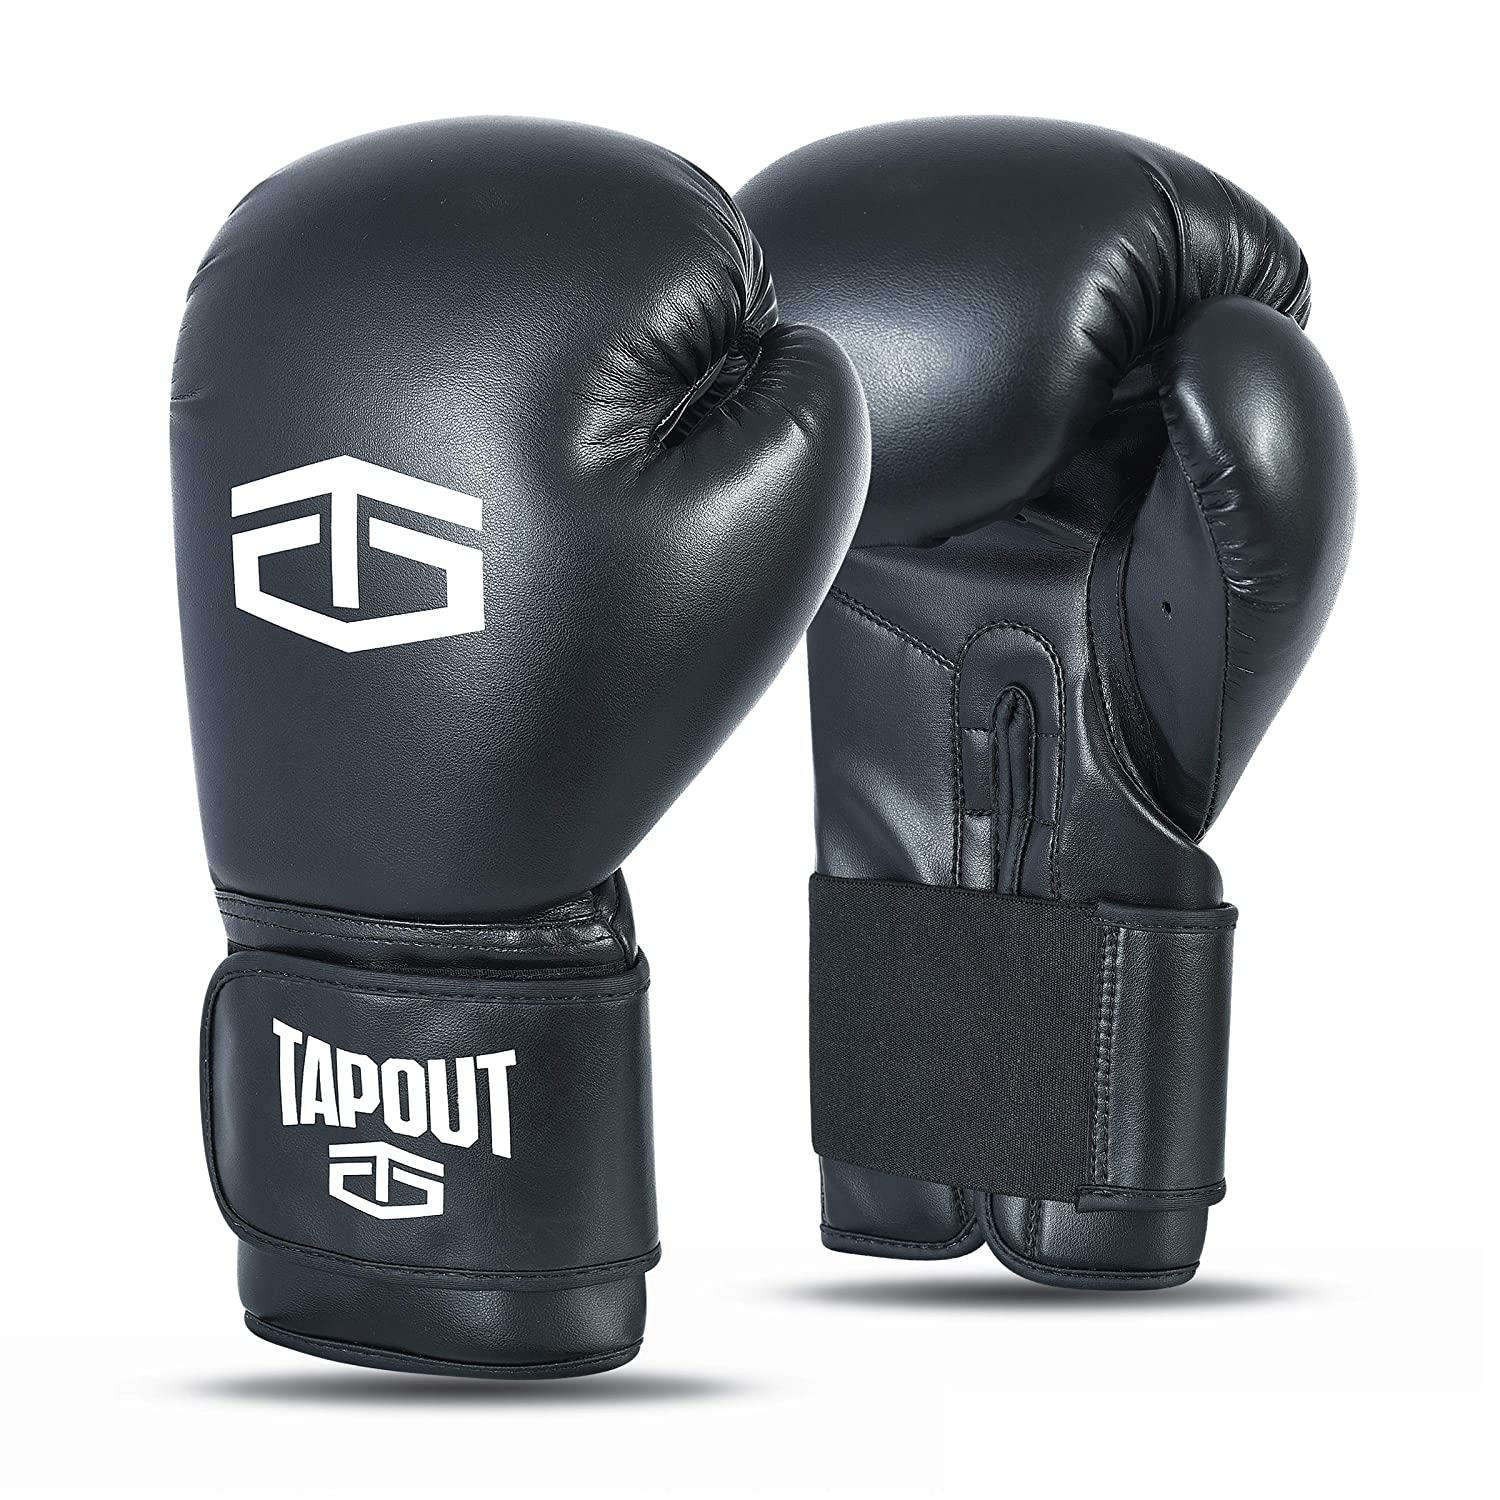 Tapout Gants Boxe Homme Dura-Leather PU Training Sparring Classic